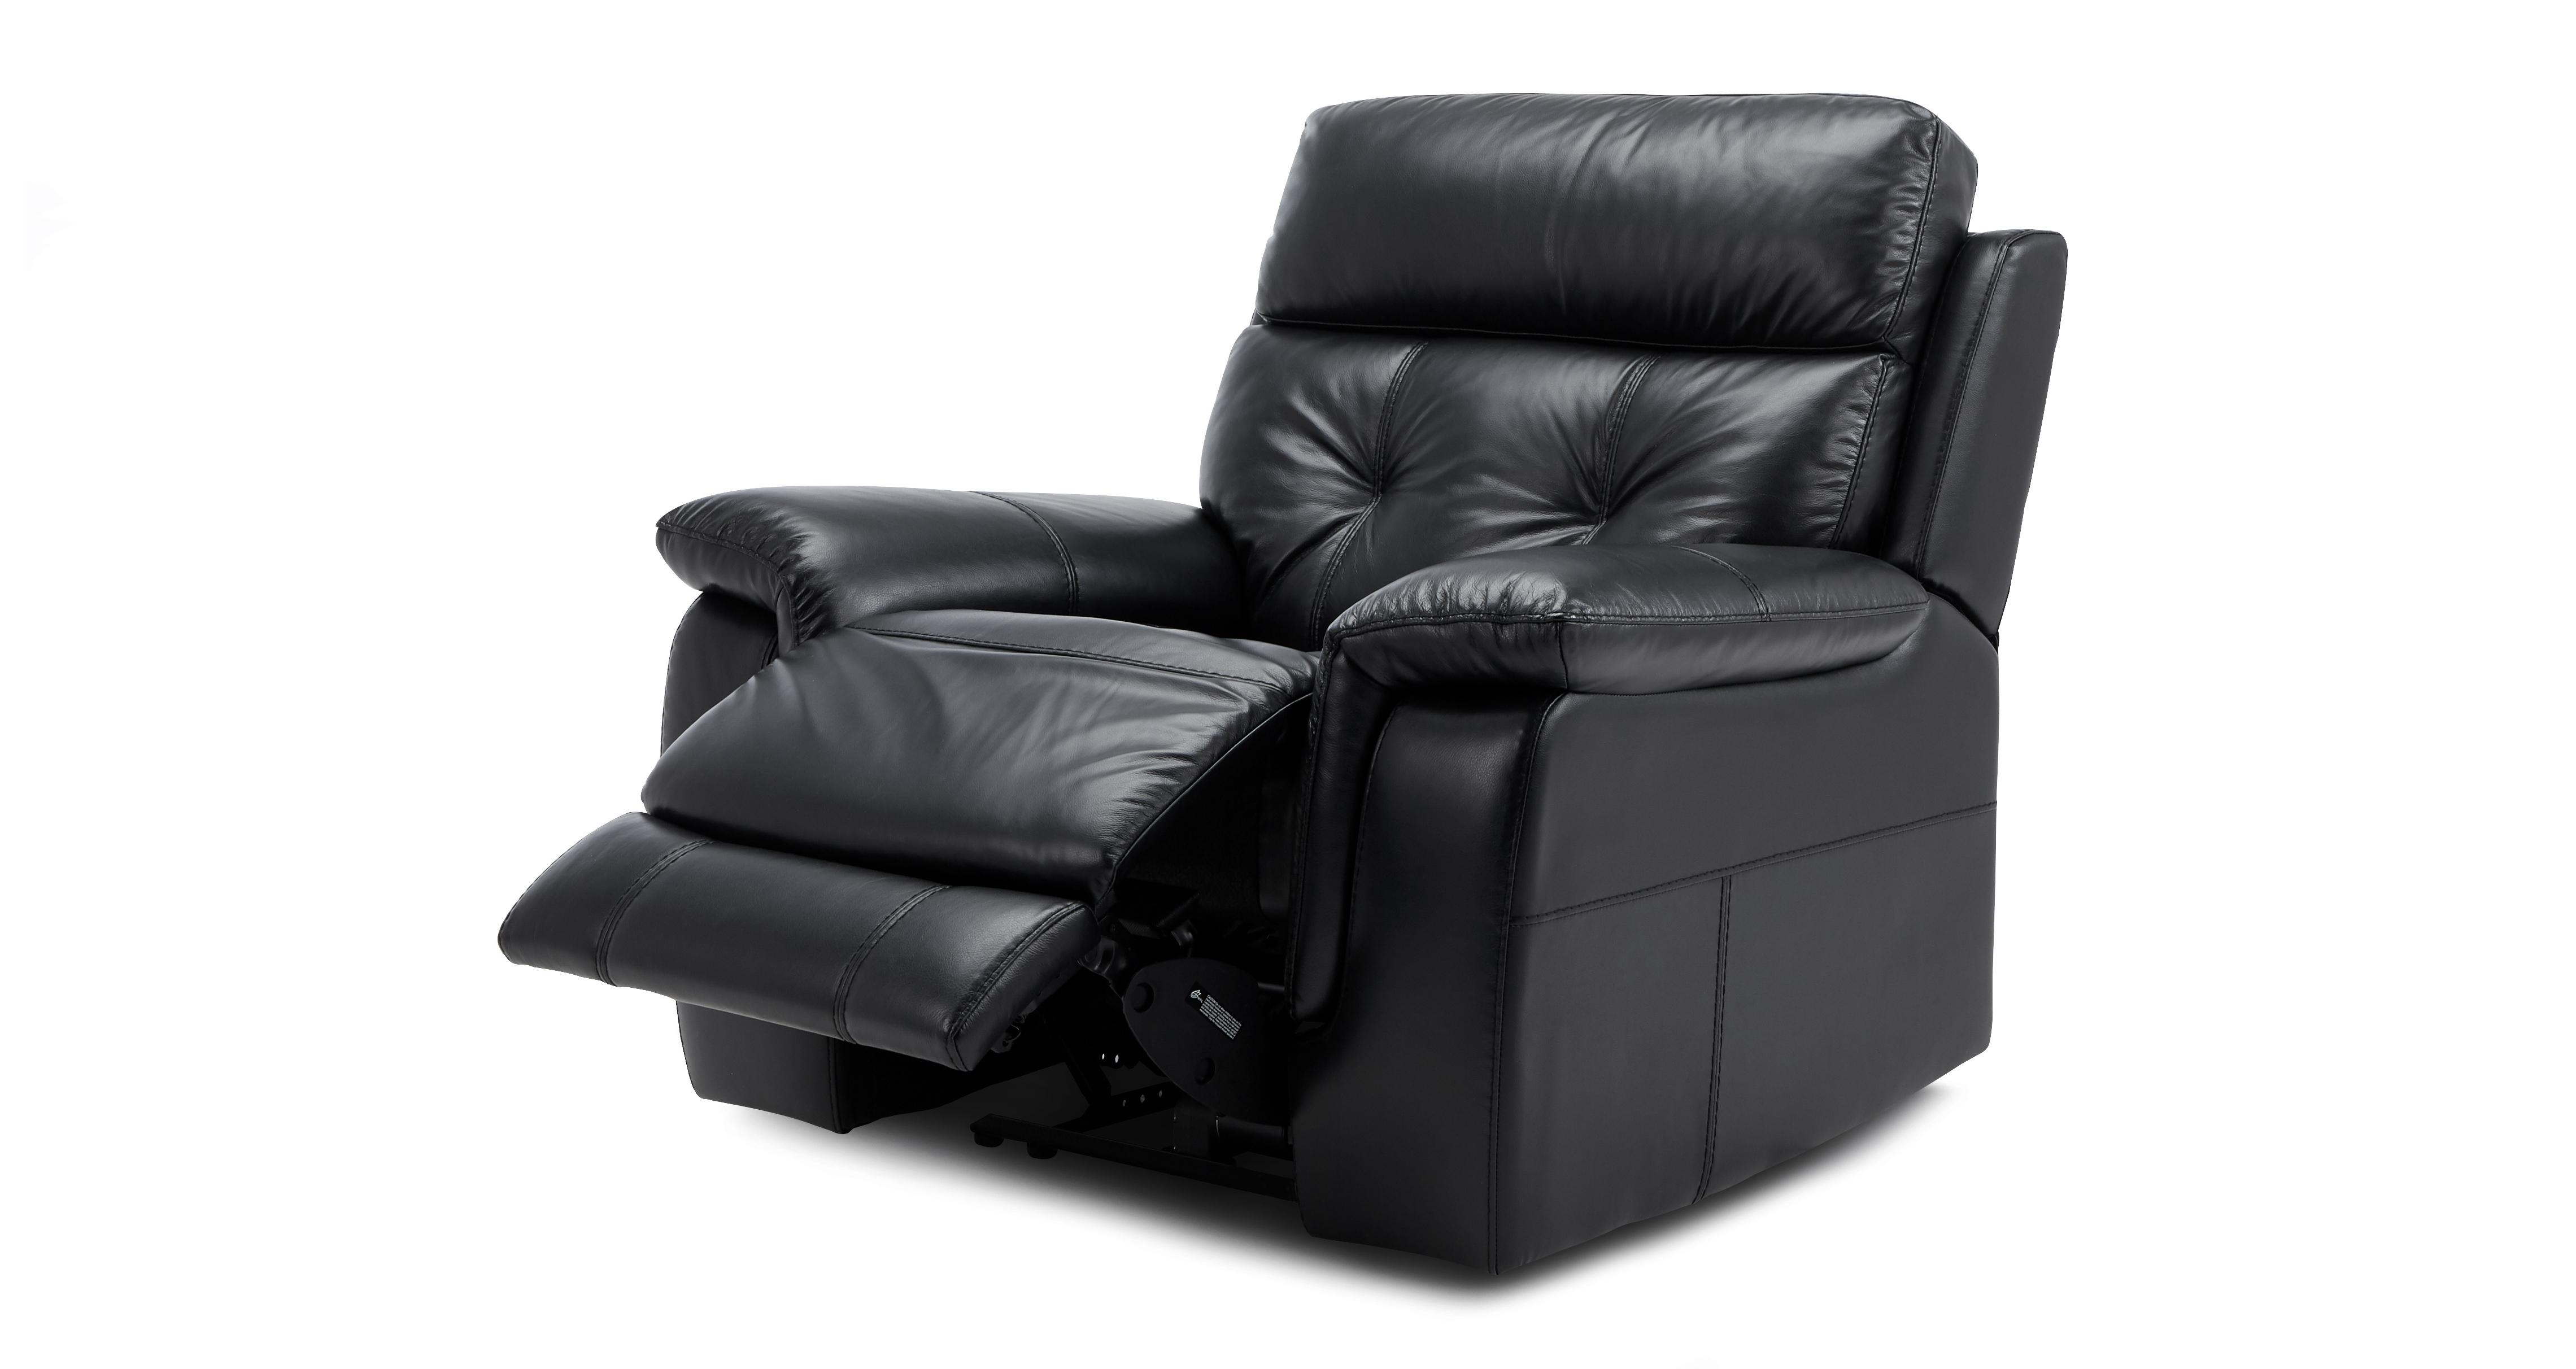 Recliner Chairs In A Range Of Styles For Your Home   DFS